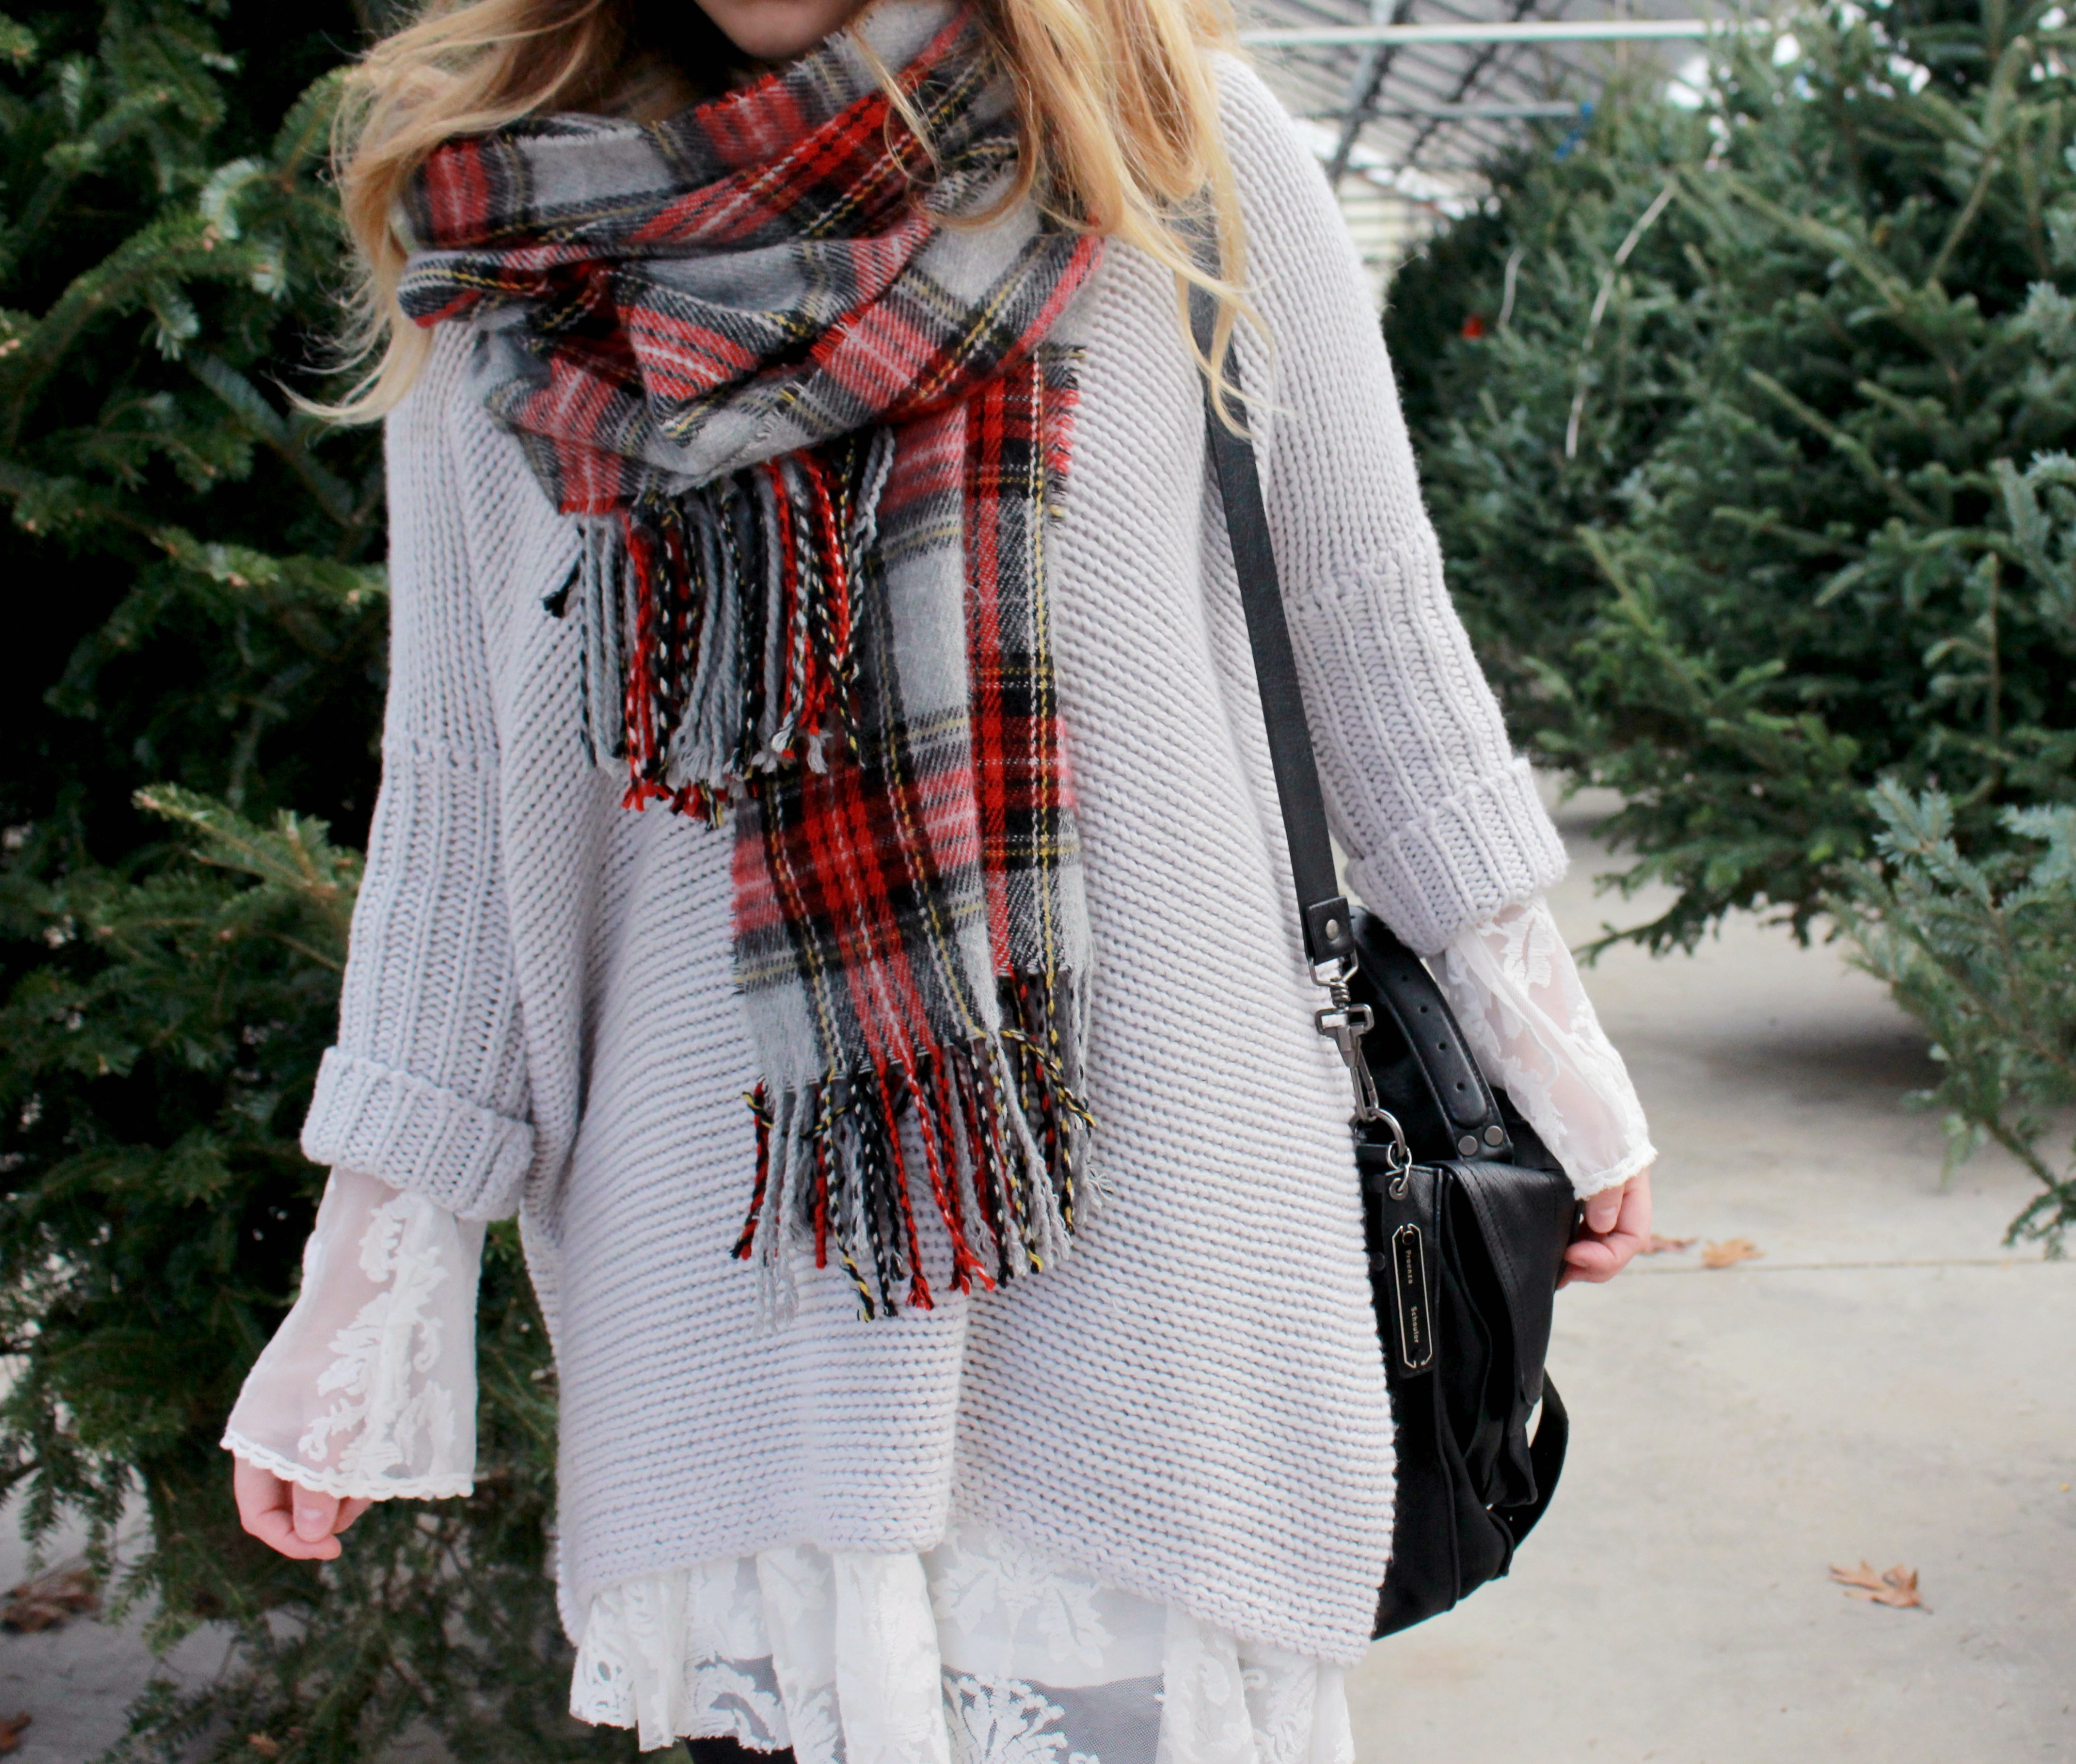 Zoe Namey of blog Zoe With Love styles a Christmas tree shopping look with an oversized sweater over a white last dress and accessorized with a plaid scarf and black hat